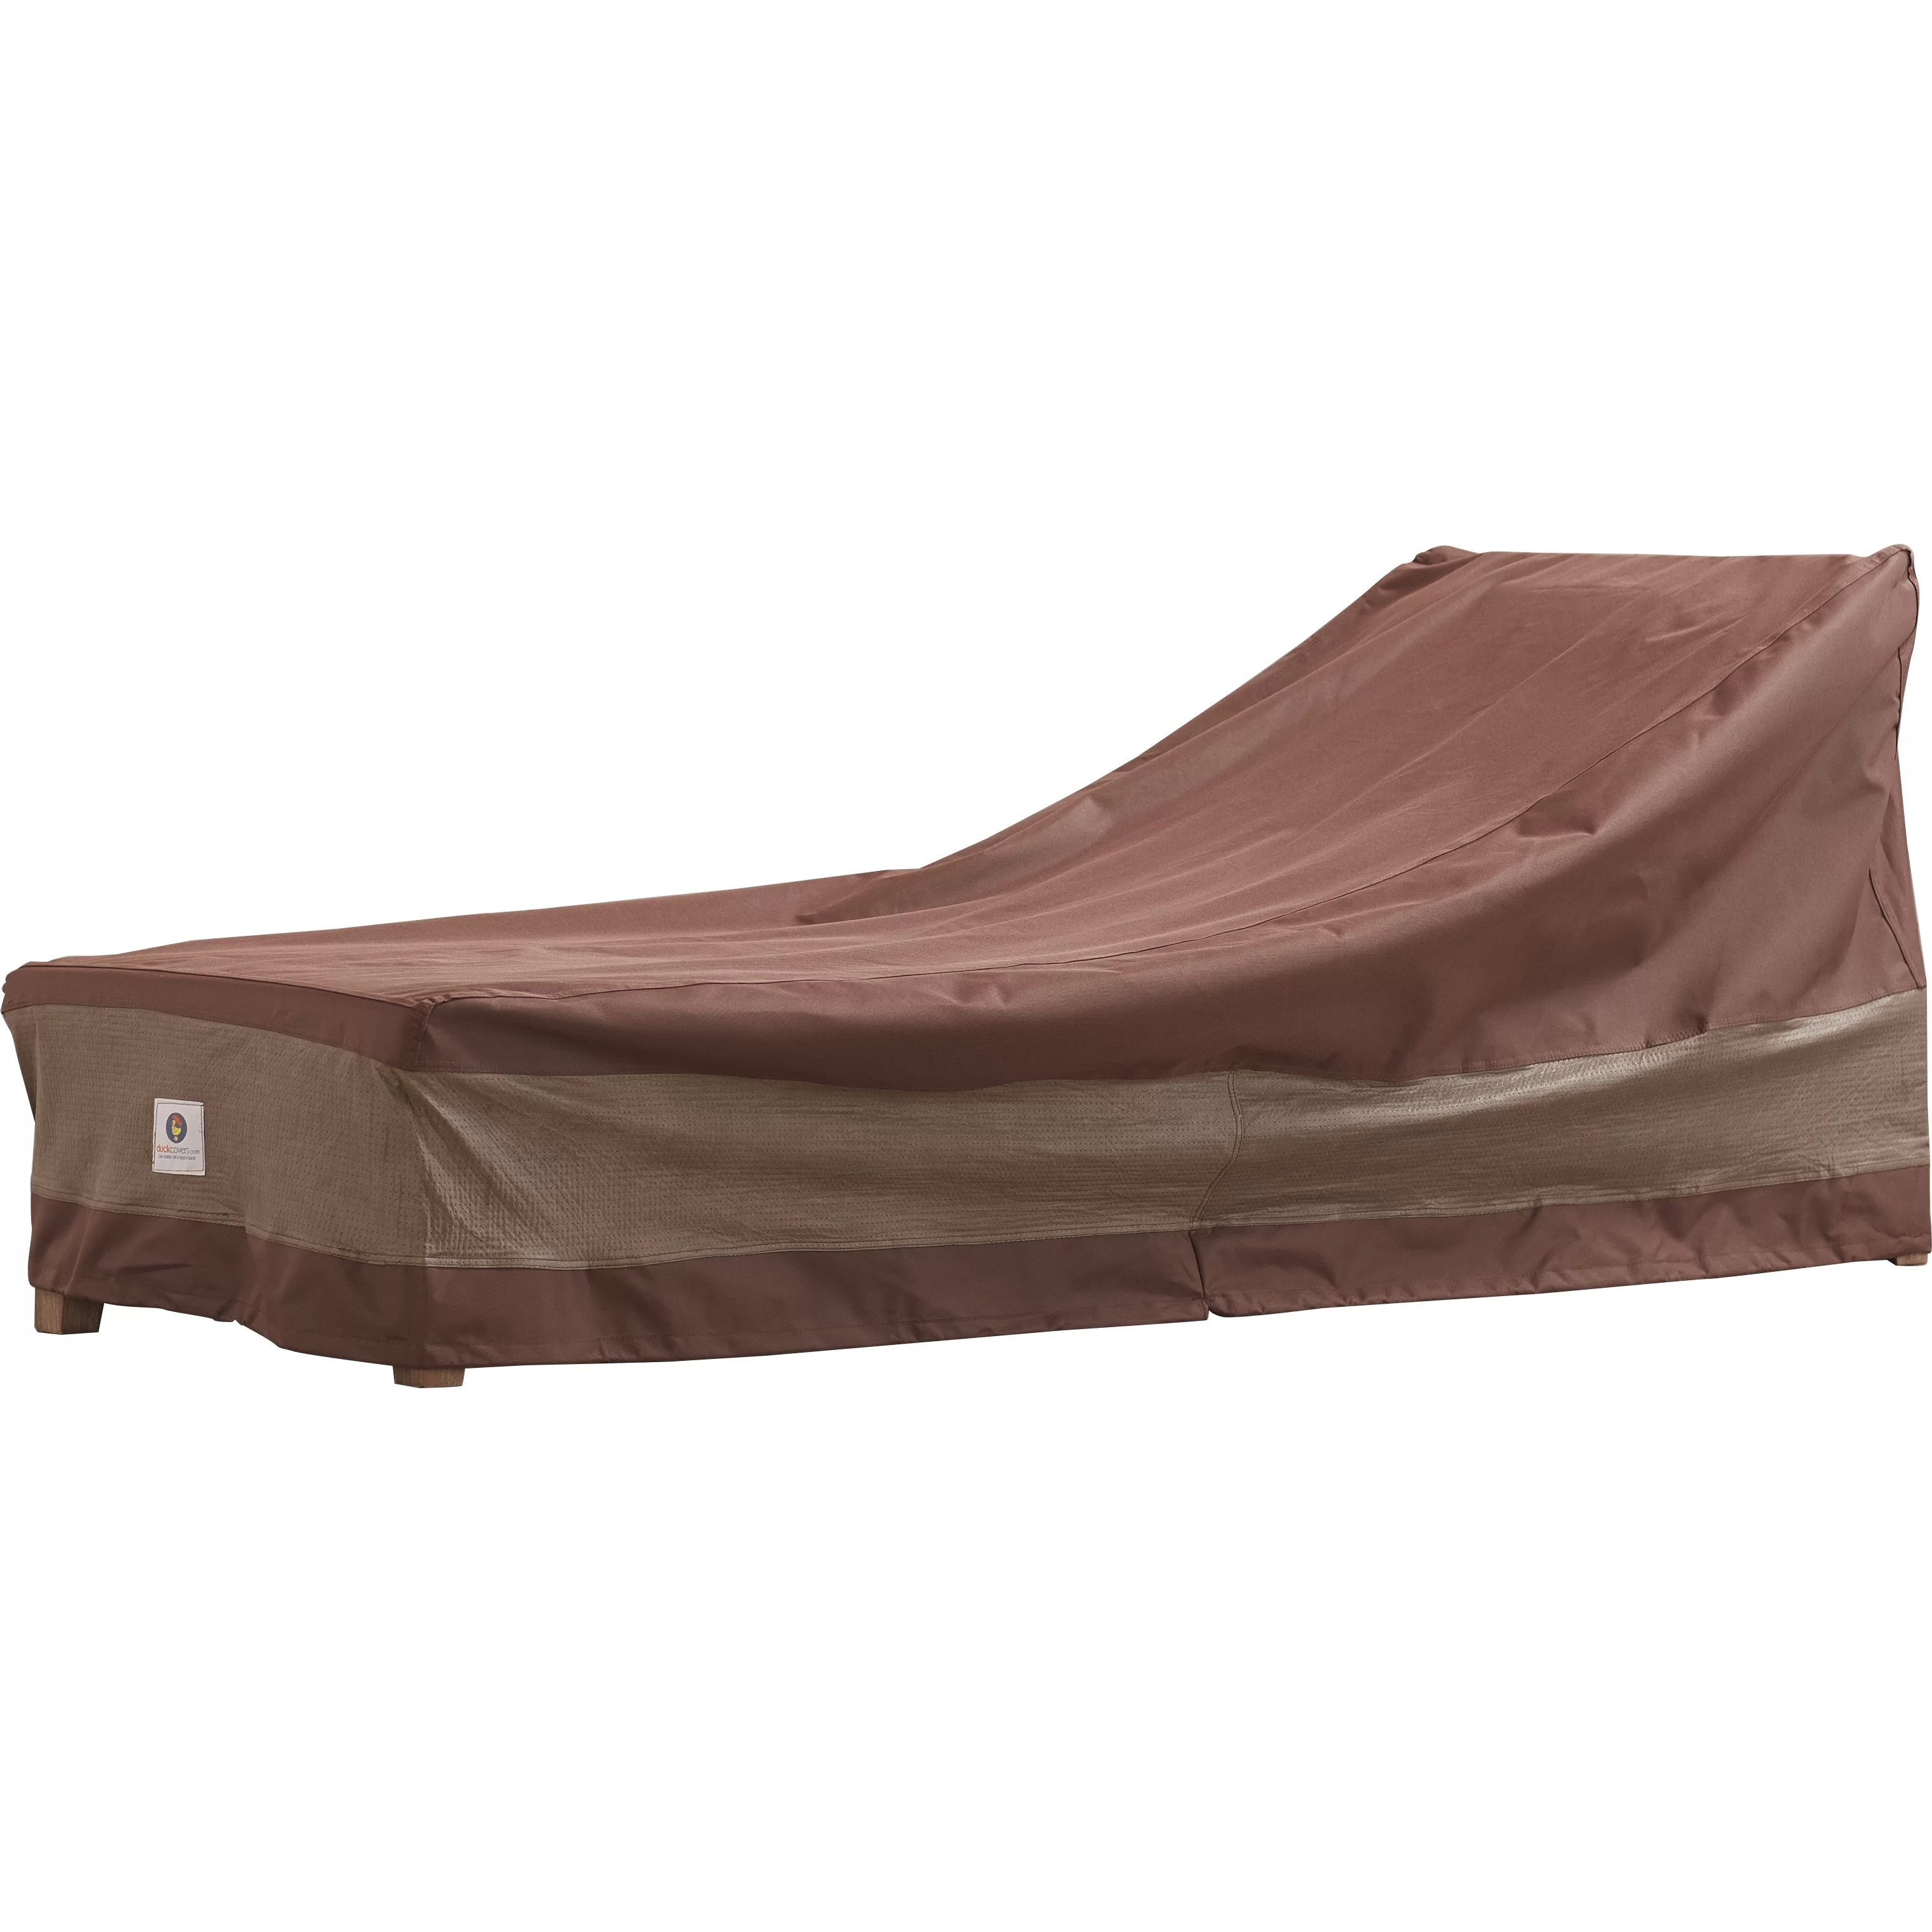 cover for chaise lounge chair replacement spindles chairs duck covers ultimate patio and reviews